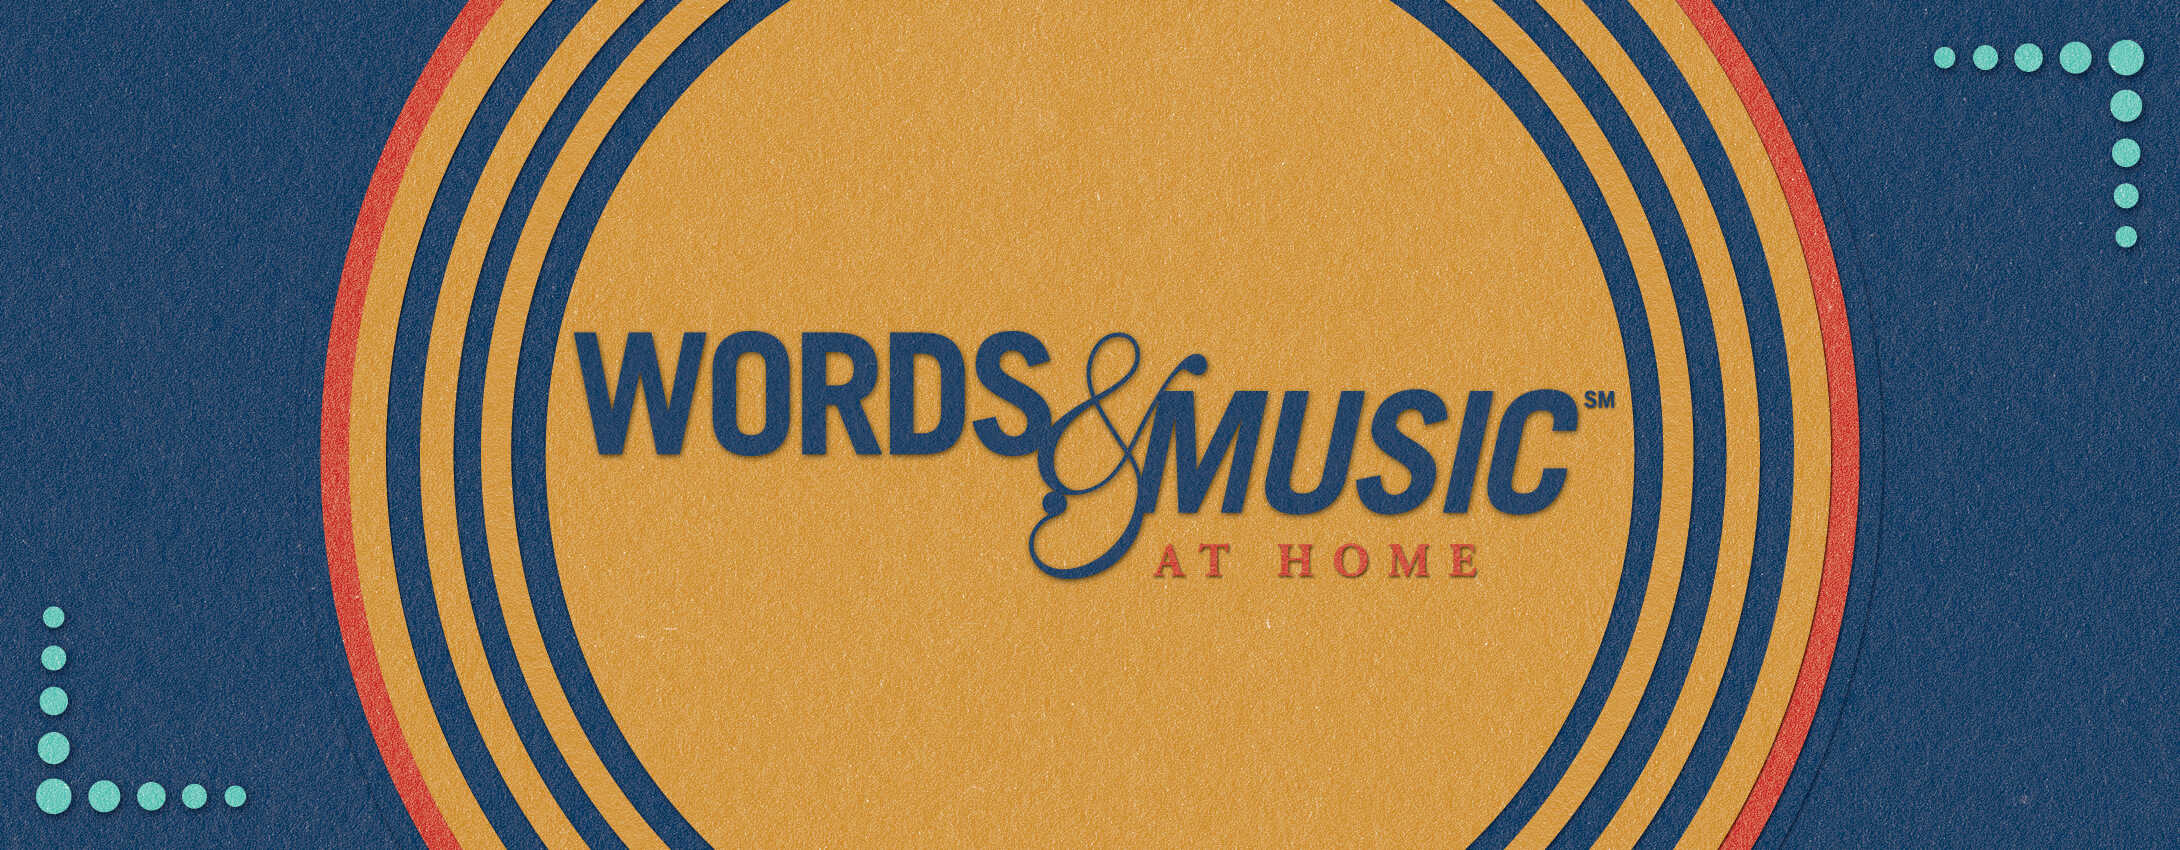 SCH_Words-MusicAtHome_DigitalAssets_20_2180x850